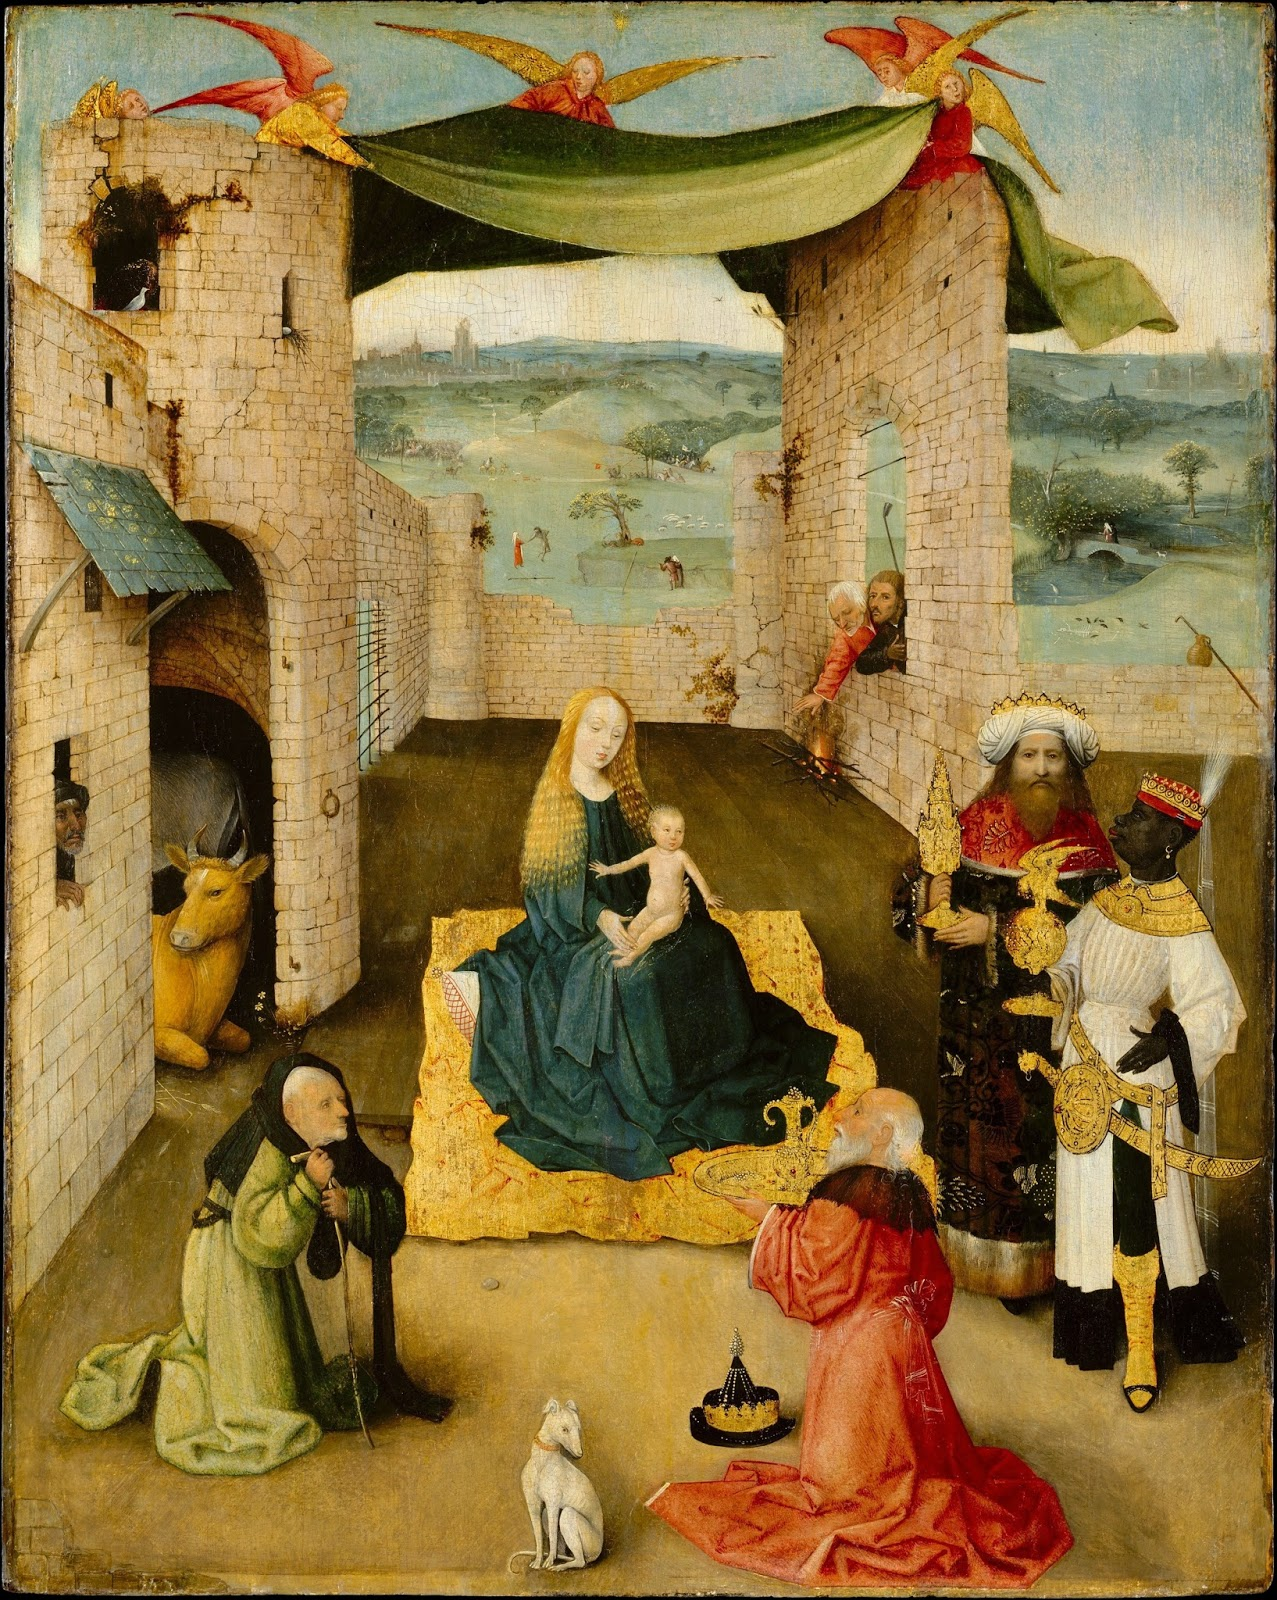 essays menotti s epiphany amahl s roots in hieronymus bosch the adoration of the magi by hieronymus bosch ca 1470 75 oil and gold on wood 28 x 22 1 4 in john stewart kennedy fund 1913